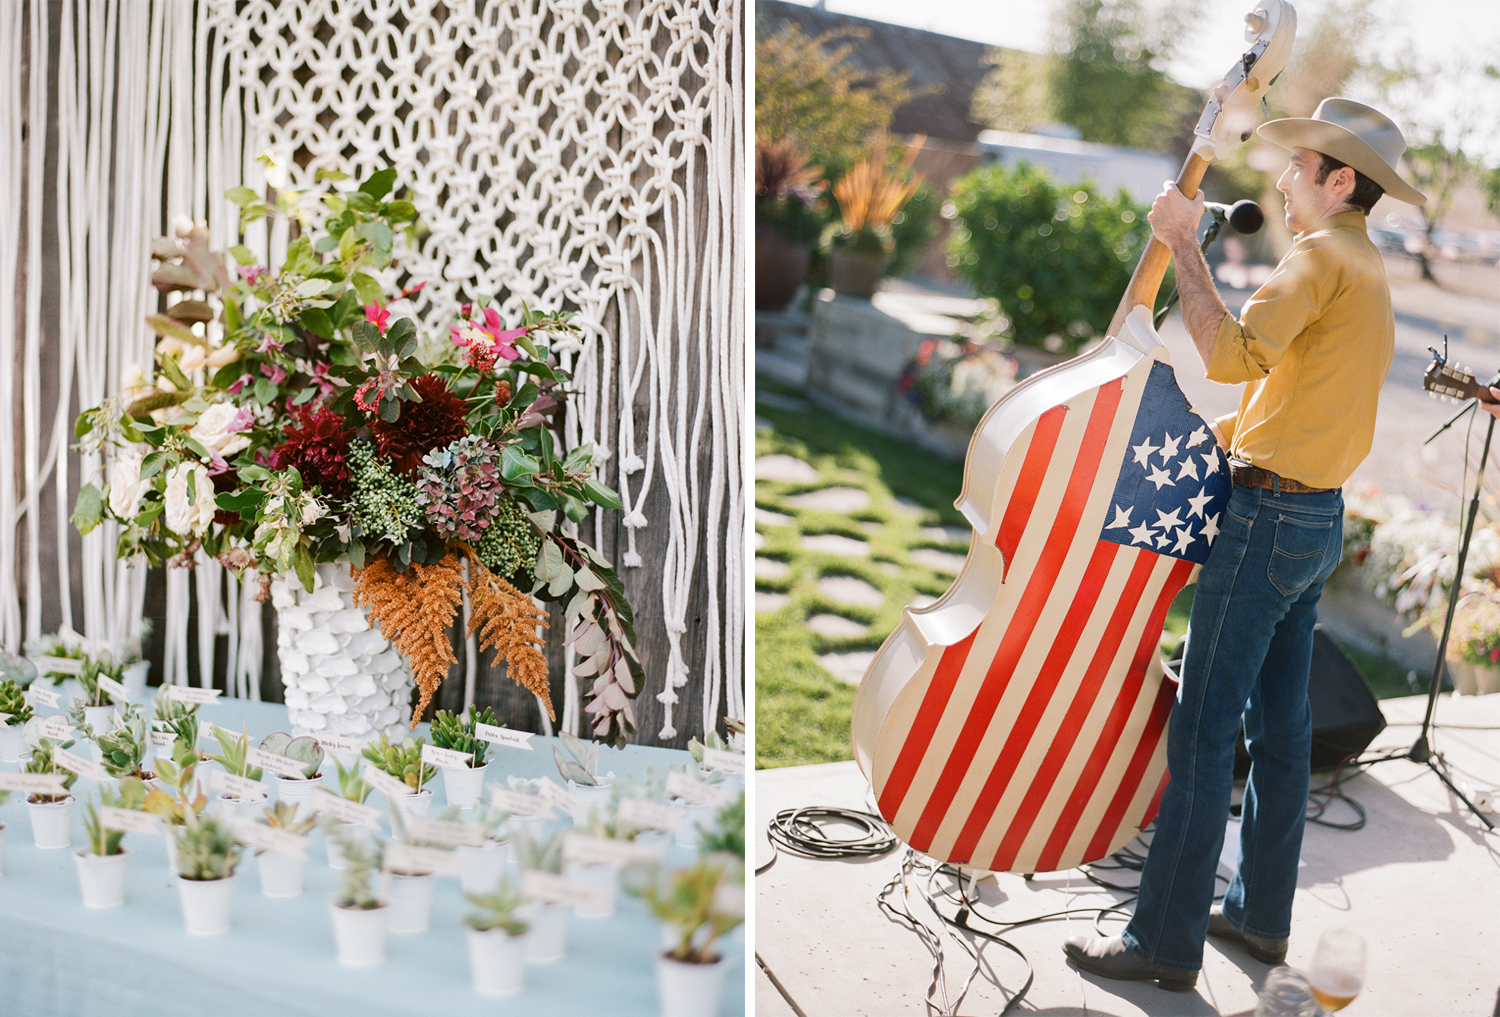 Macrame hanging and table card/succulent planters; Sylvie Gil Photography